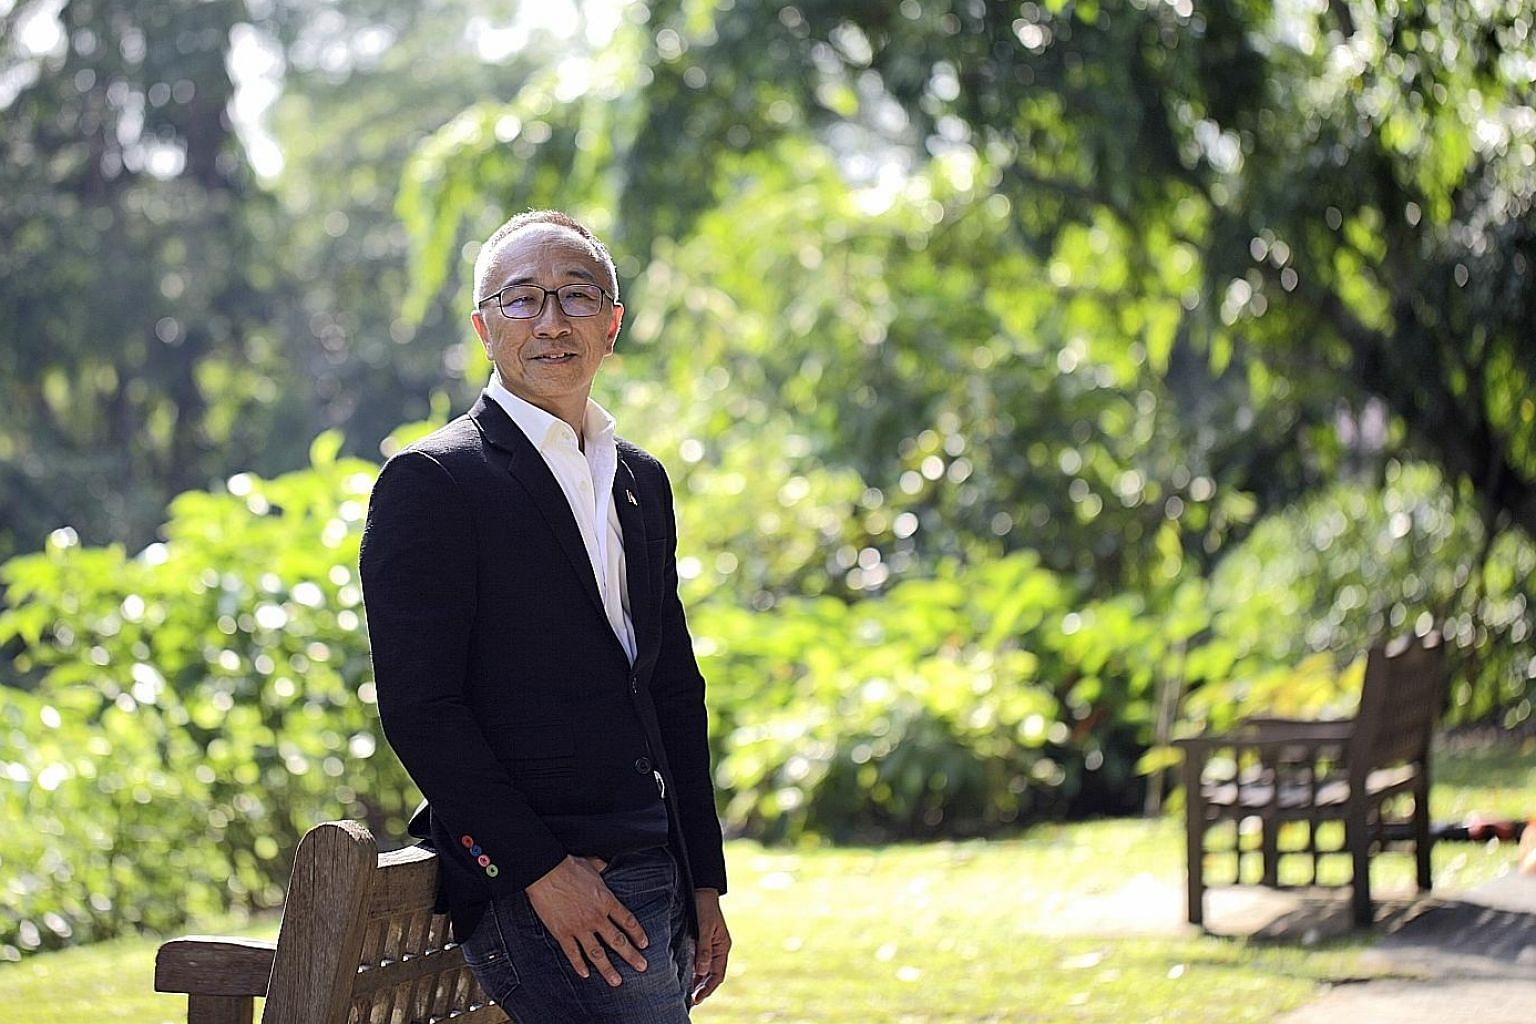 Mr Eric Lim and his family have a mixed investment portfolio, with 5 per cent in fixed deposits, 10 per cent in stocks, 30 per cent in property and the remaining 55 per cent in his businesses.